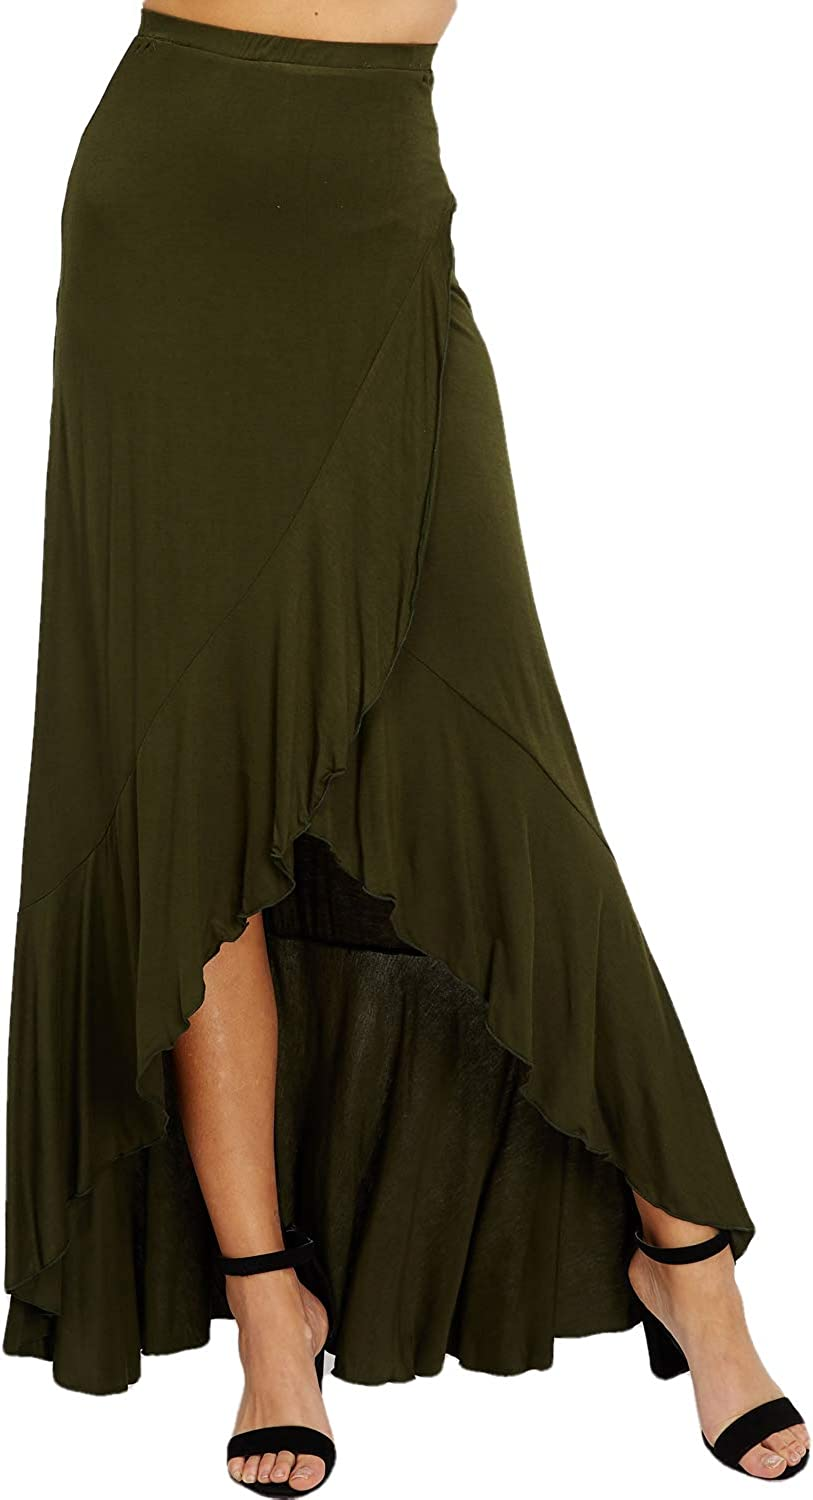 Women's Casual Maxi Long Skirt - High Waisted Solid Draped Ruffle Front Overlap Soft Comfort Lounge S4121 Olive L